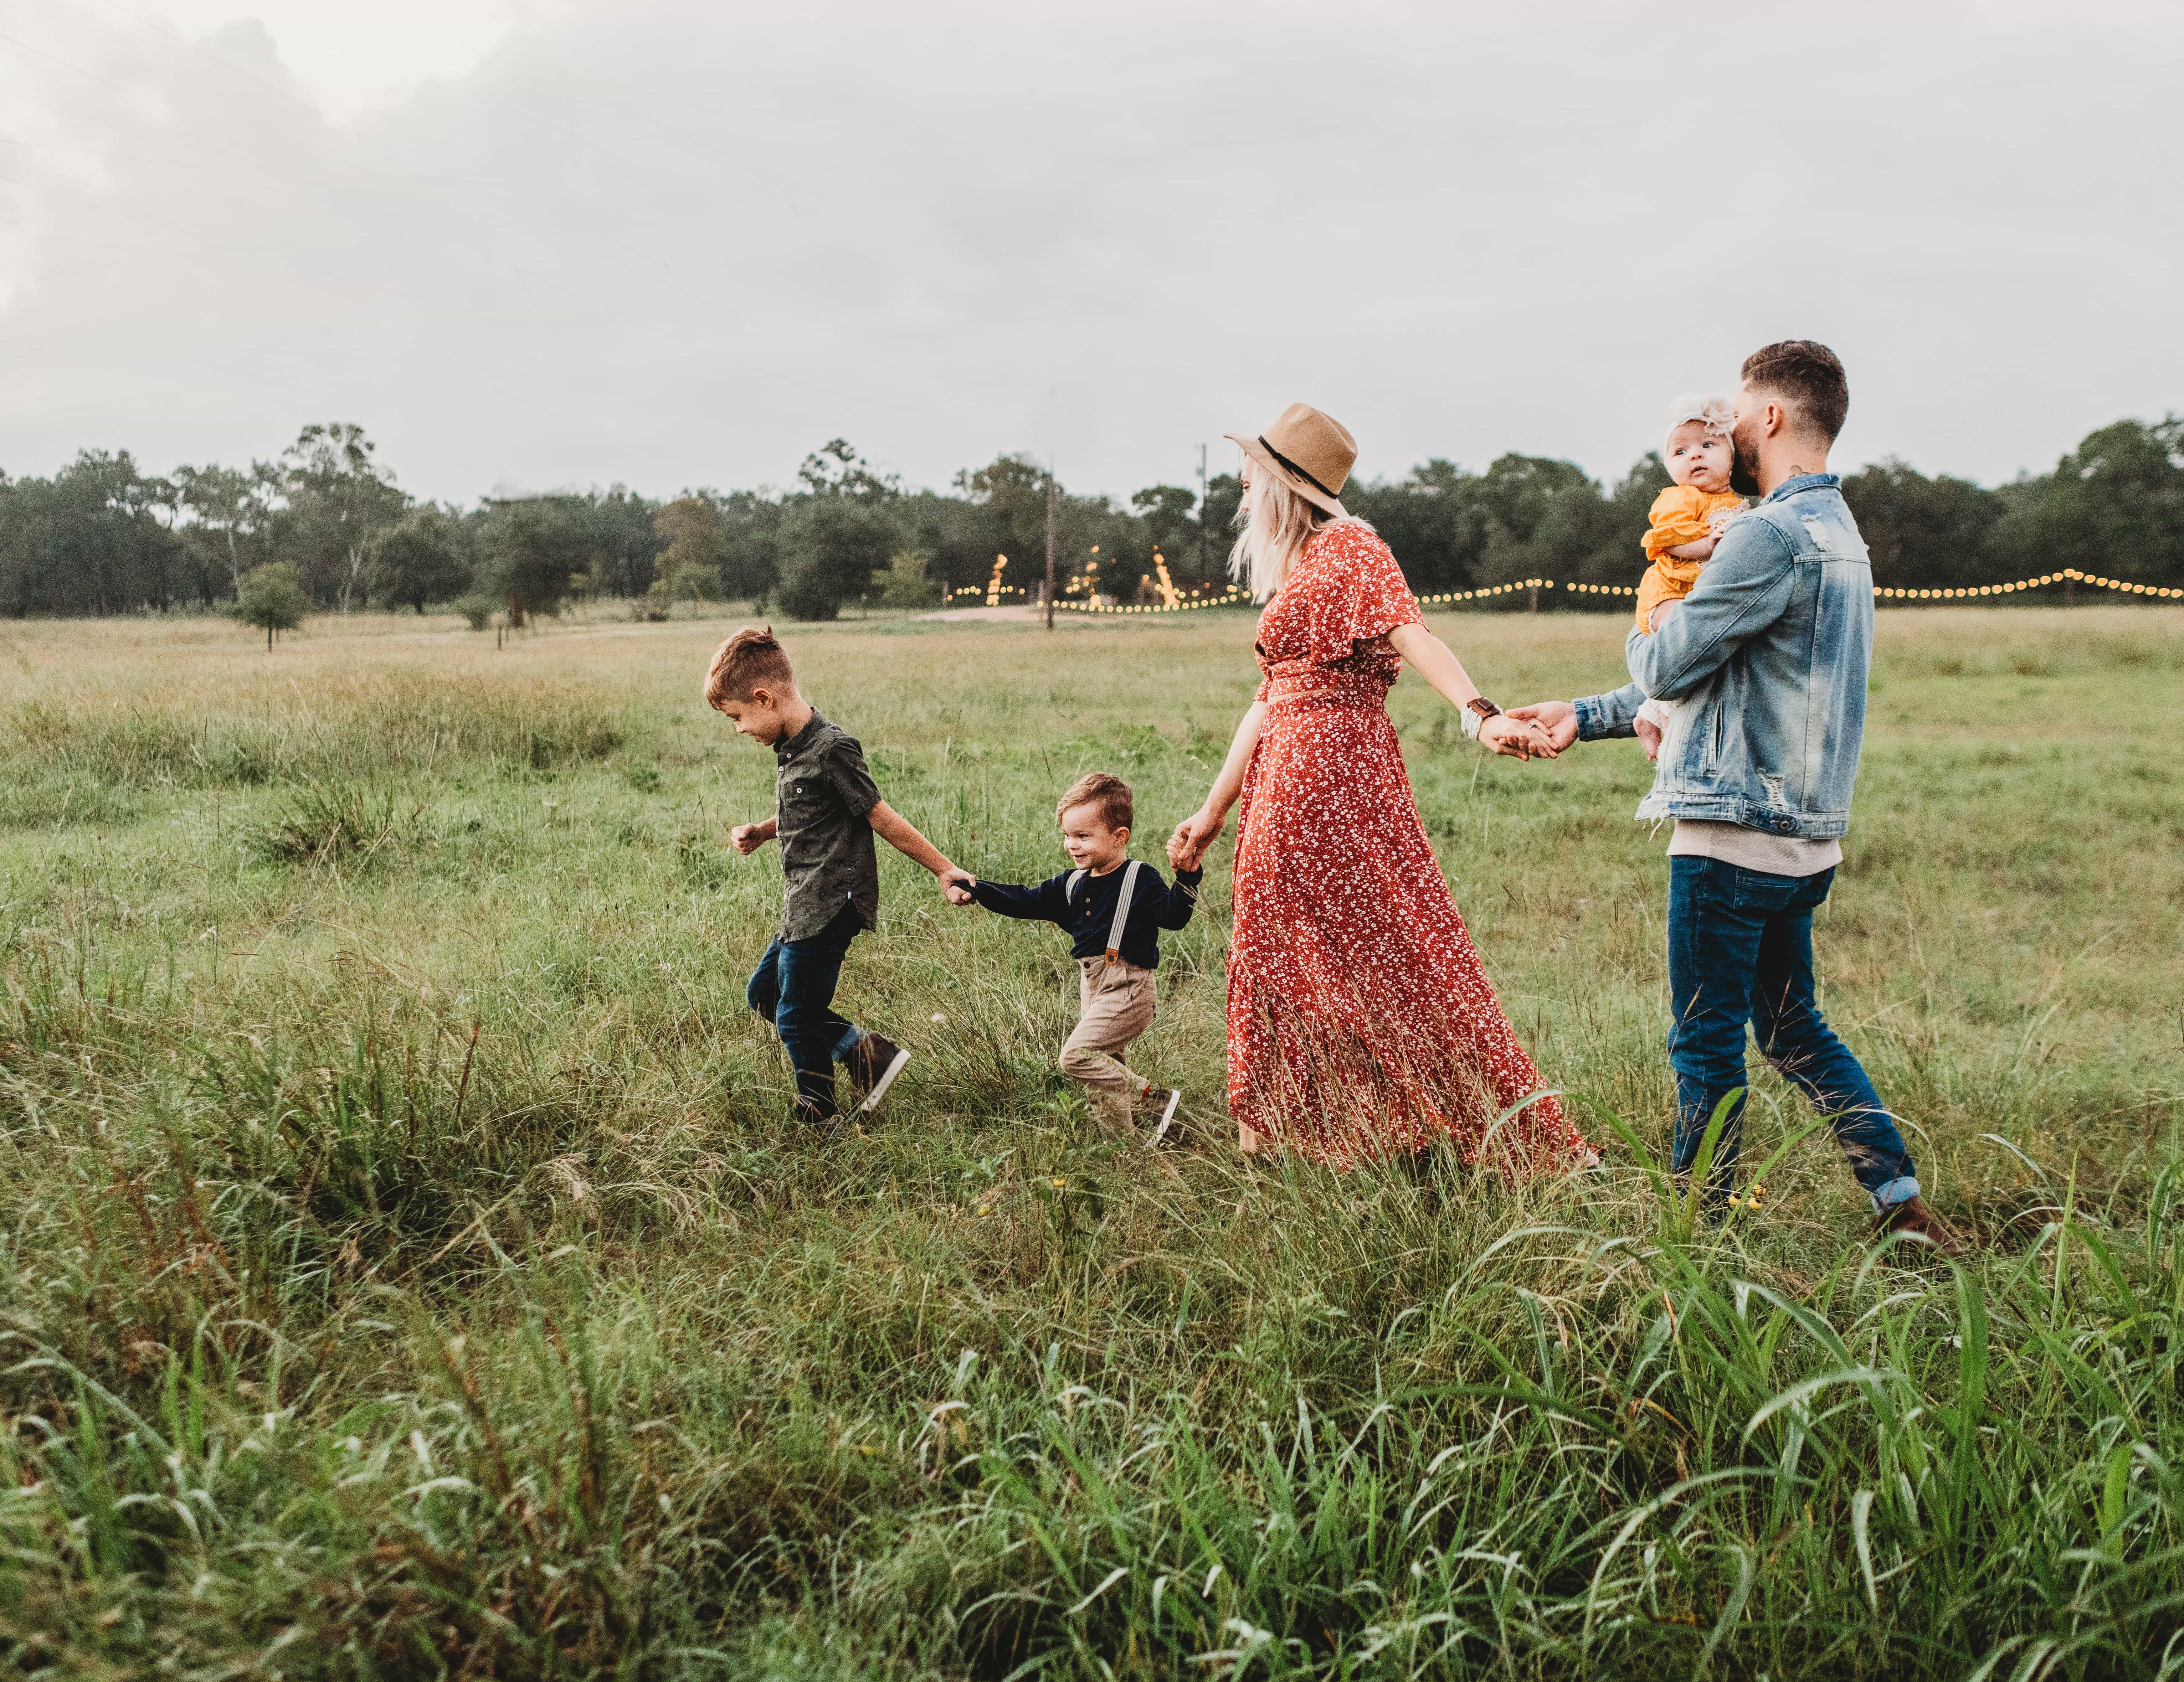 Picture of a family walking through a field of grass.